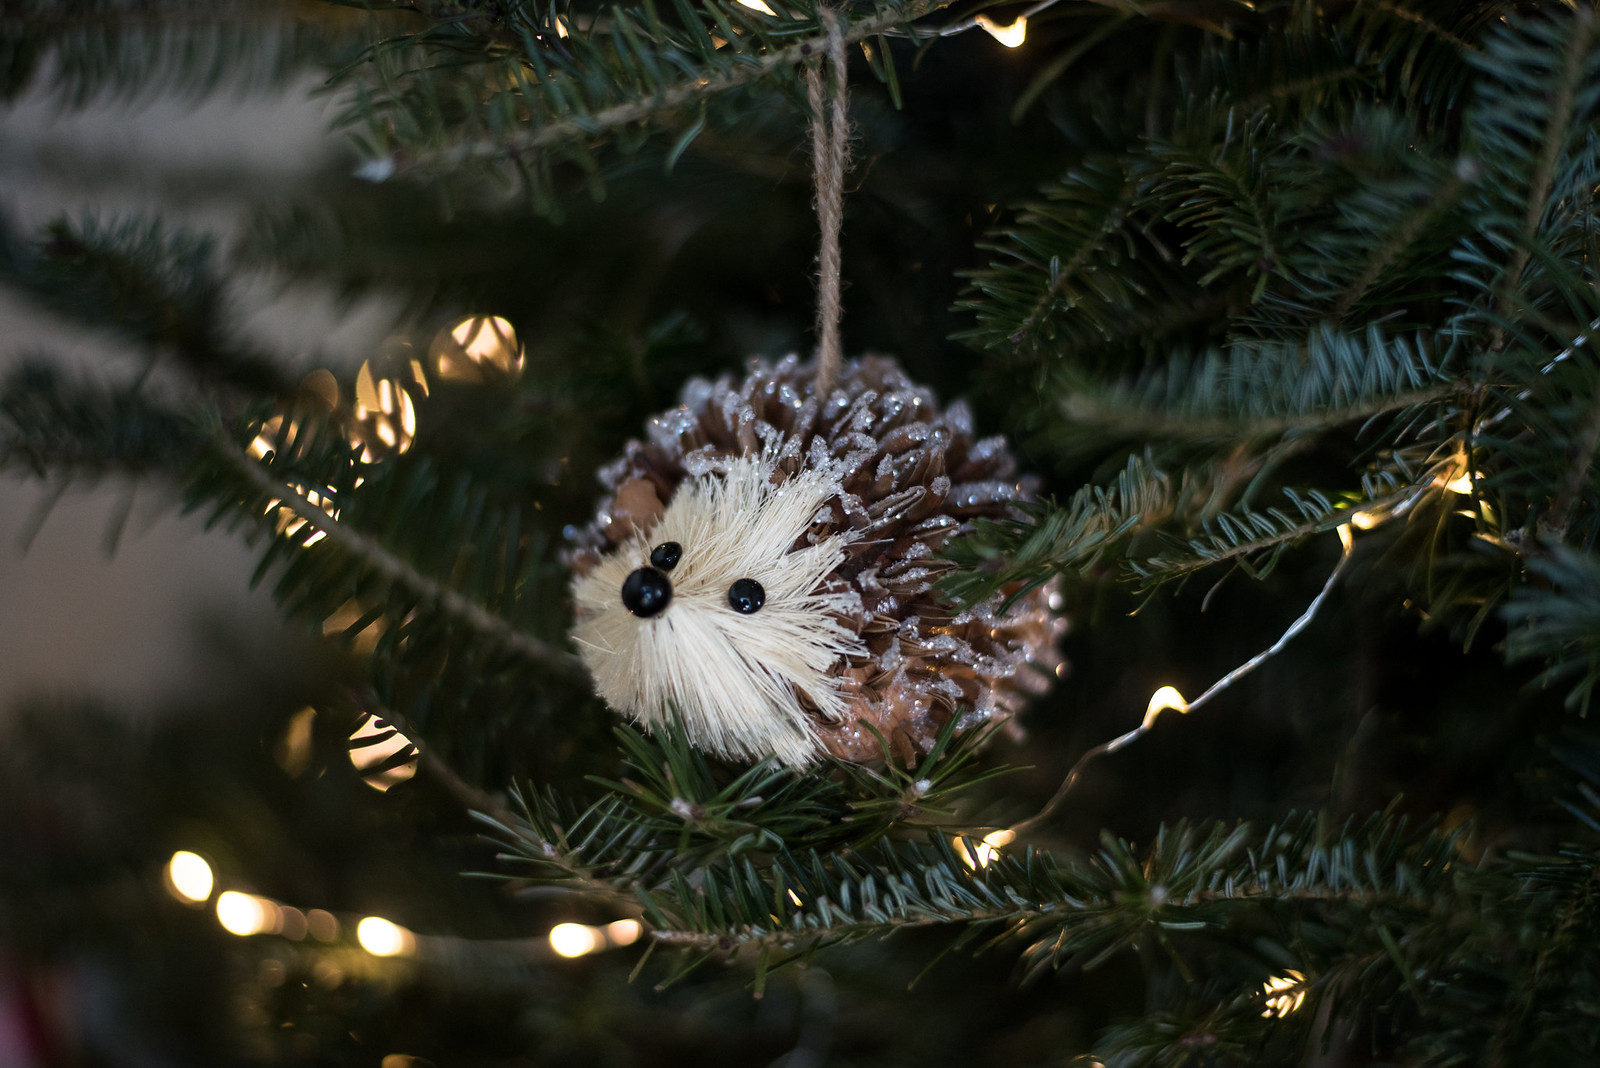 Pinecone Porcupine Ornament on juliettelaura.blogspot.com